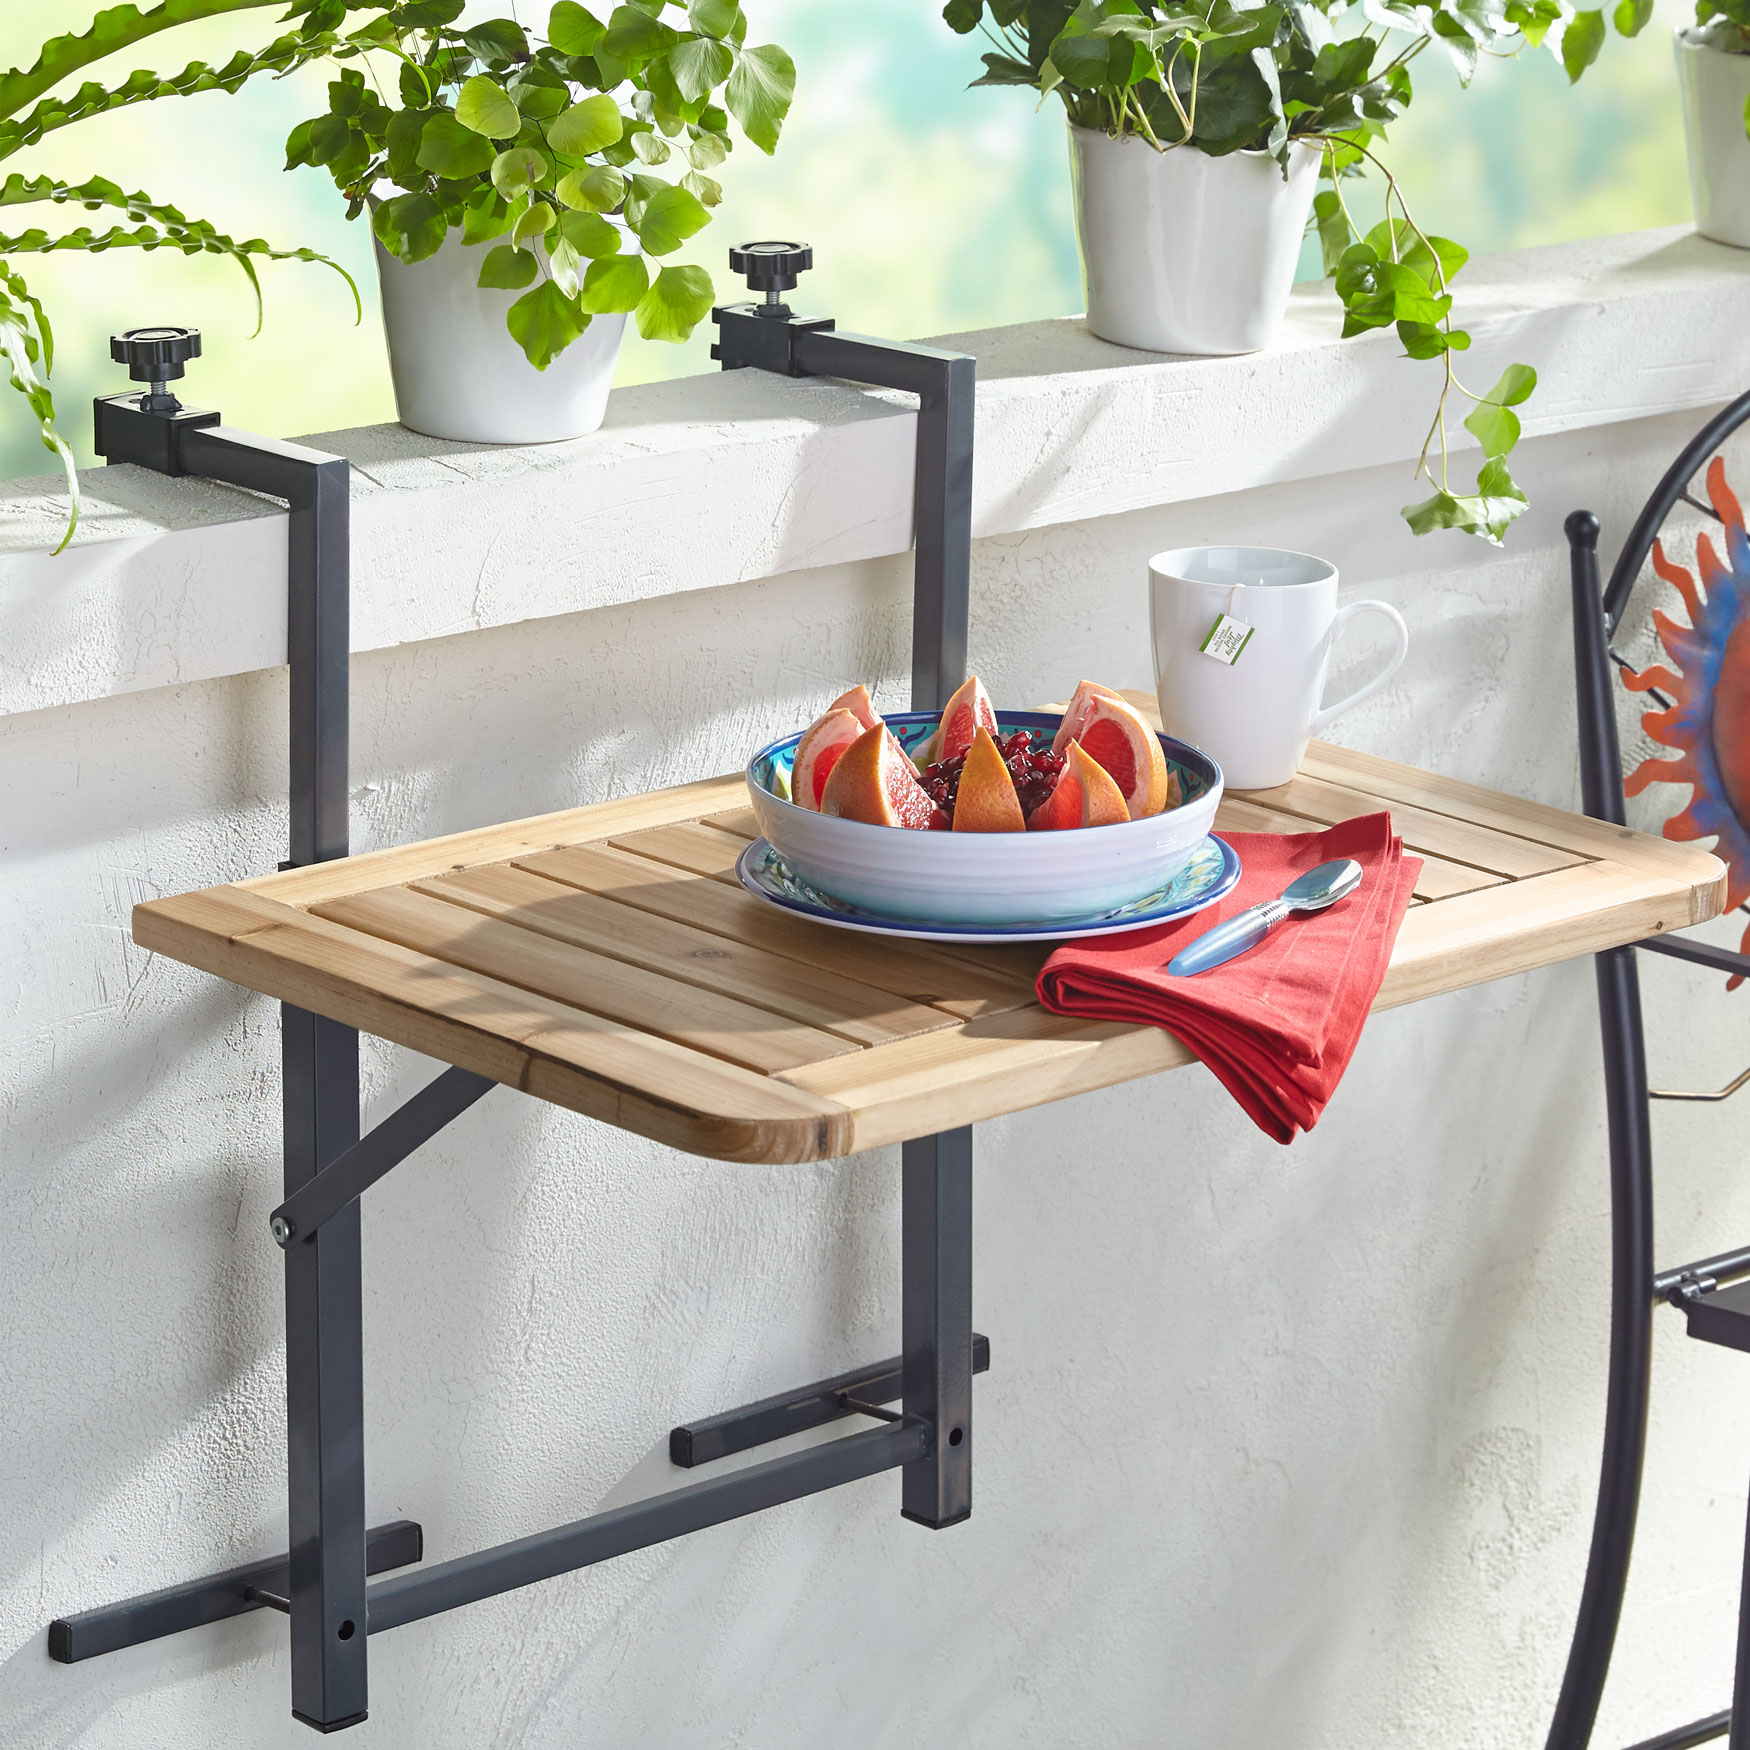 Wood Balcony Folding Table, NATURAL